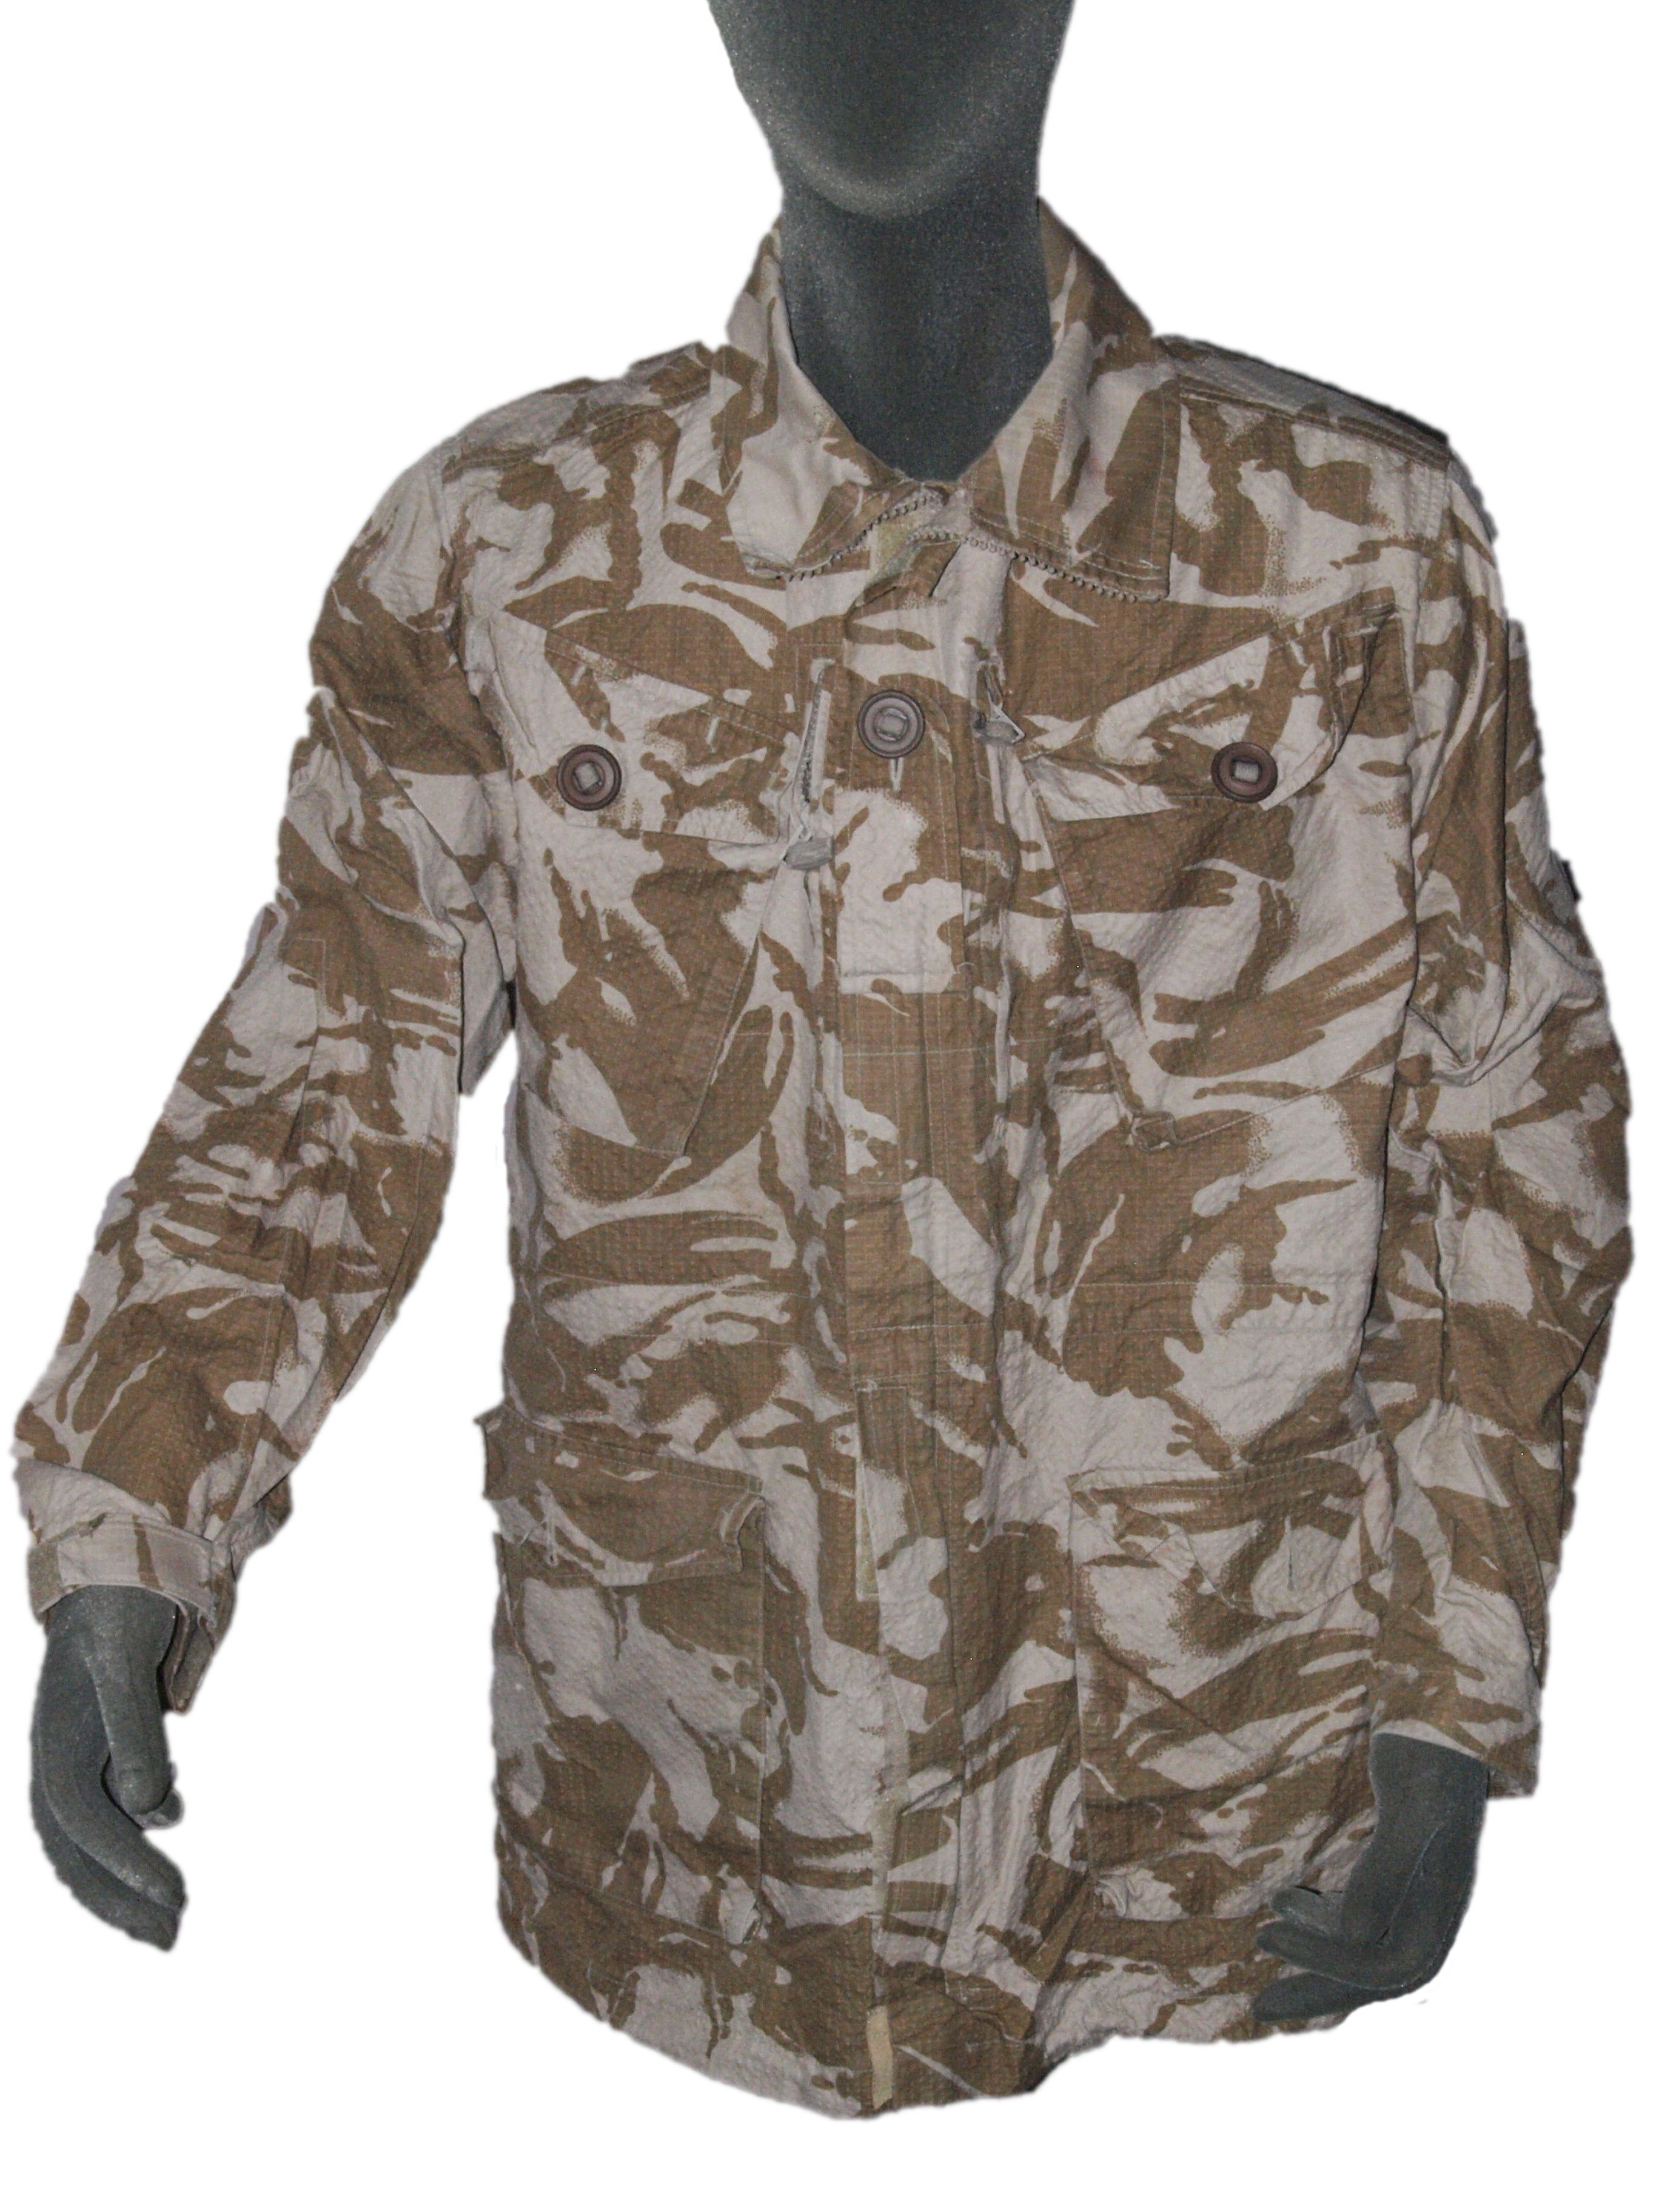 British Army Desert DPM 'Soldier 95' Rip-stop Jacket